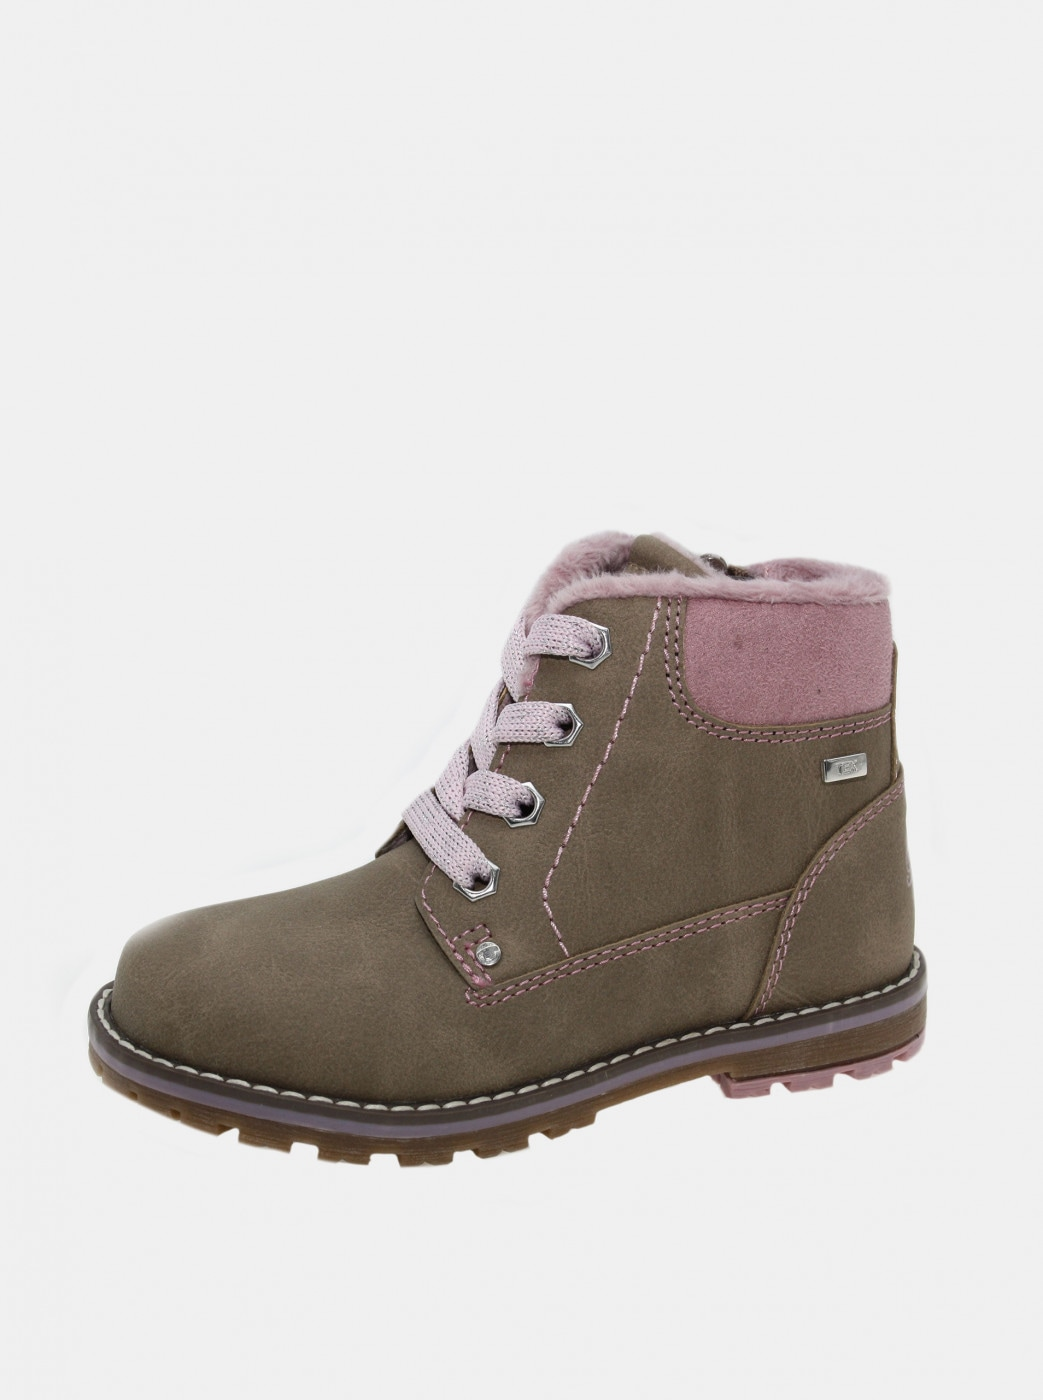 Beige girly winter boots Tom Tailor